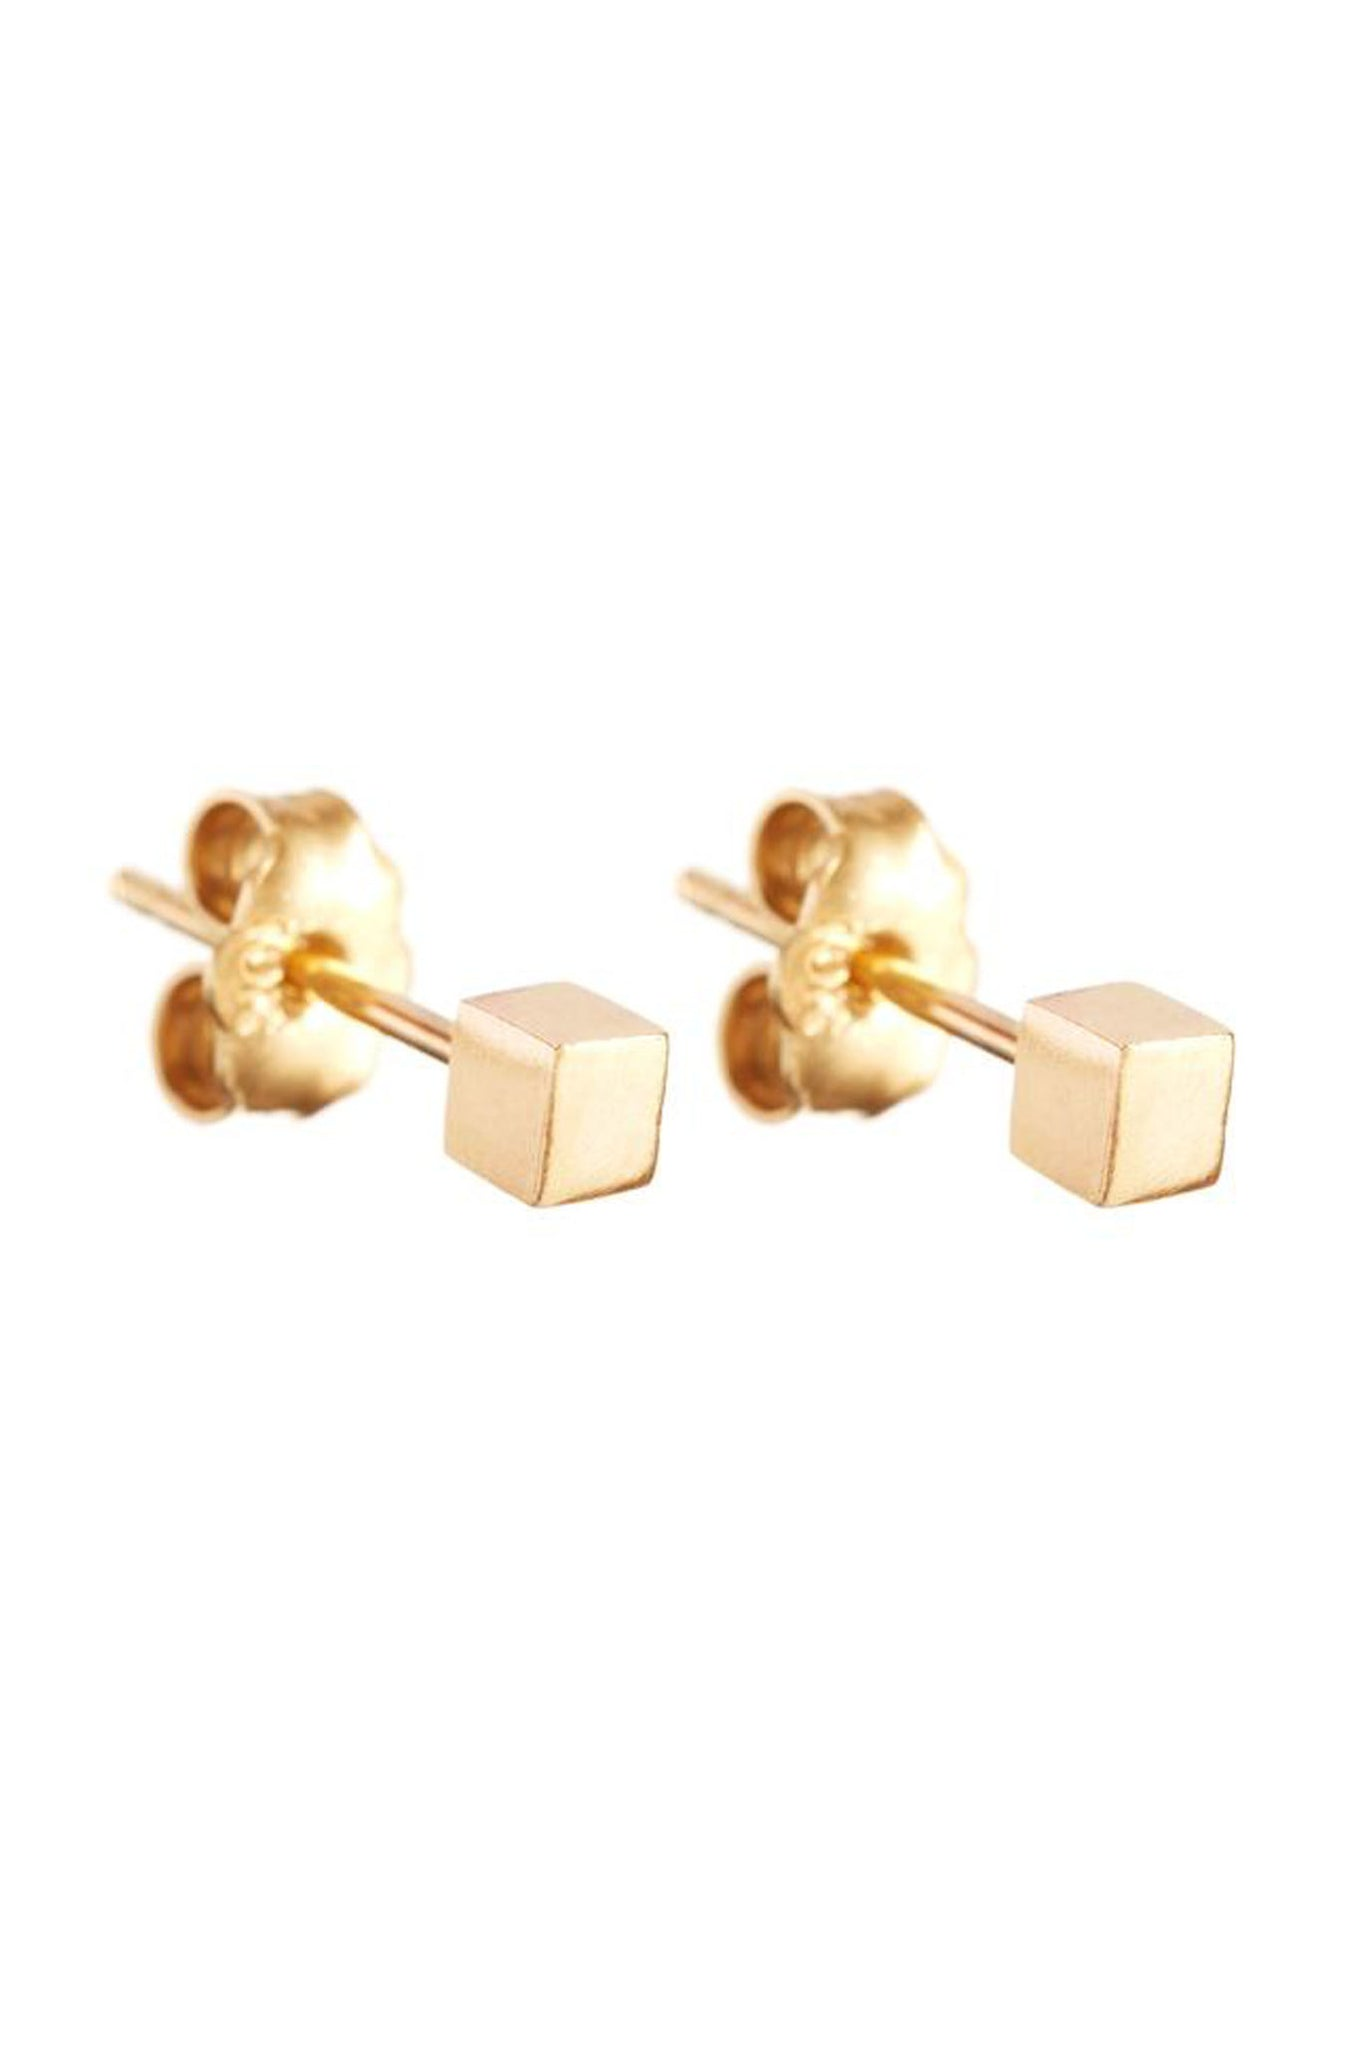 GOLD BOX EARRING